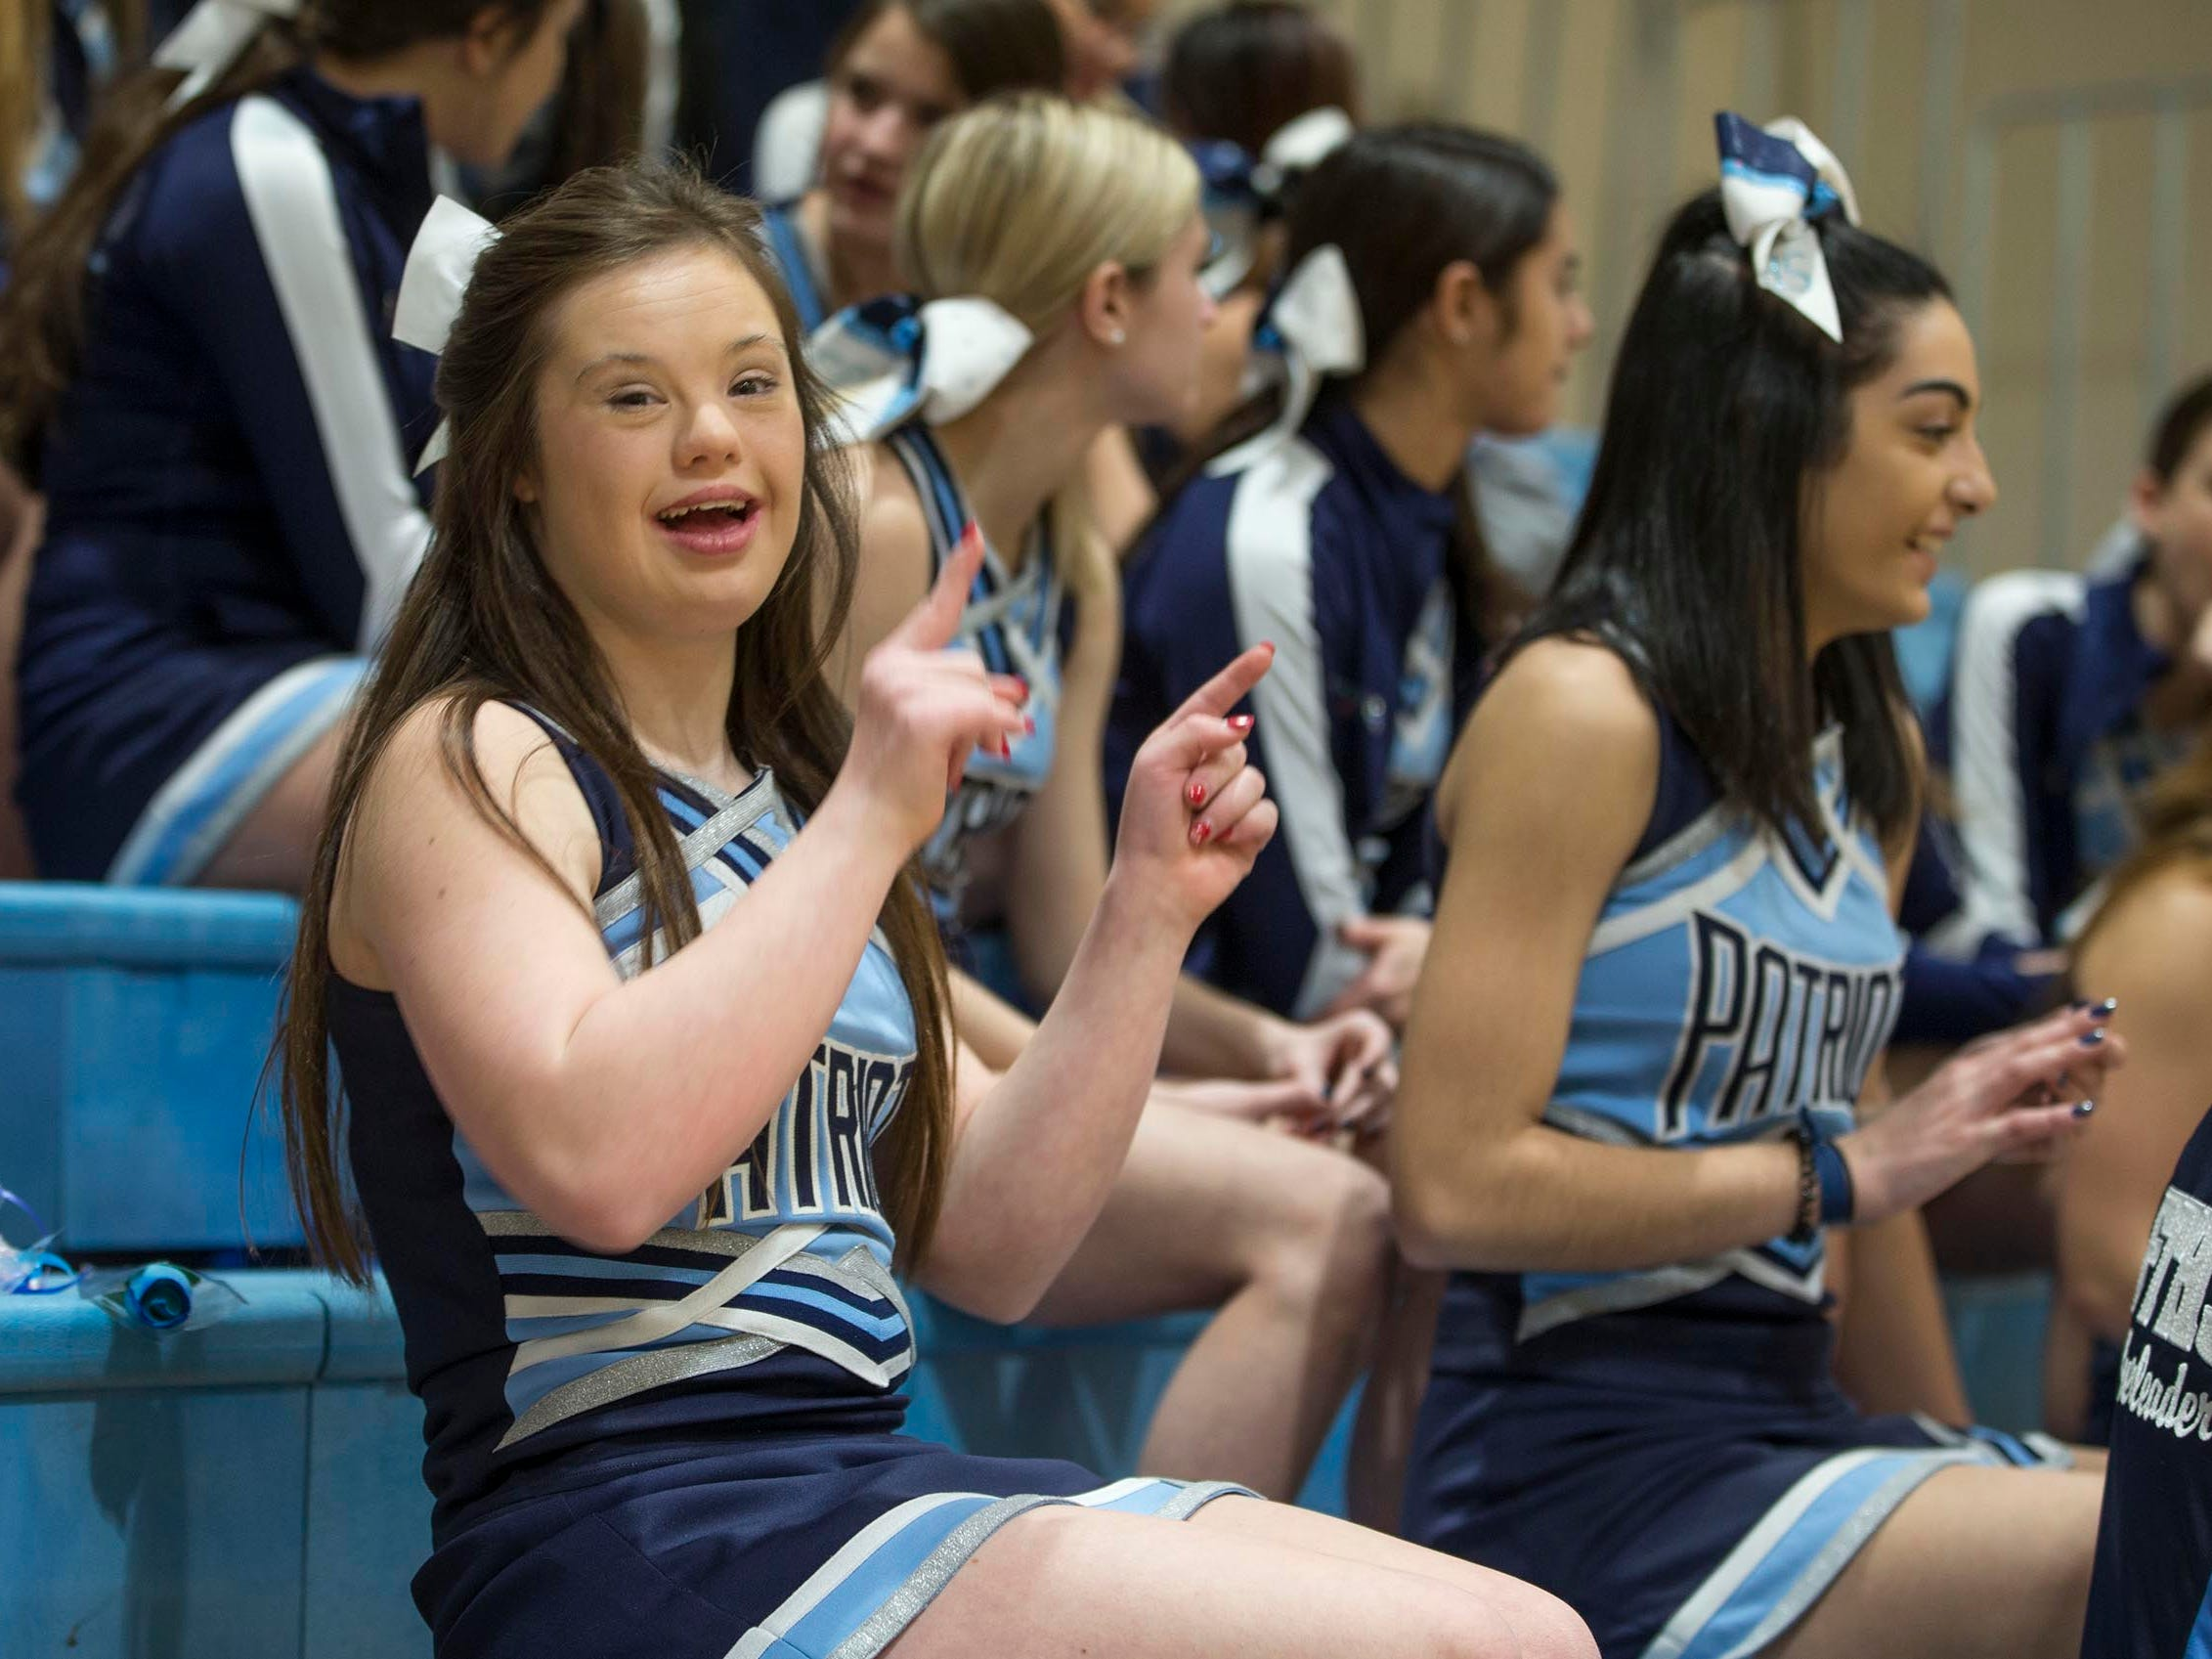 Alaina Lardaro has Down Syndrome, but it doesn't stop her from being as active as any other teen. Along with many other talents, she is a member of the Freehold High School cheerleading squad.